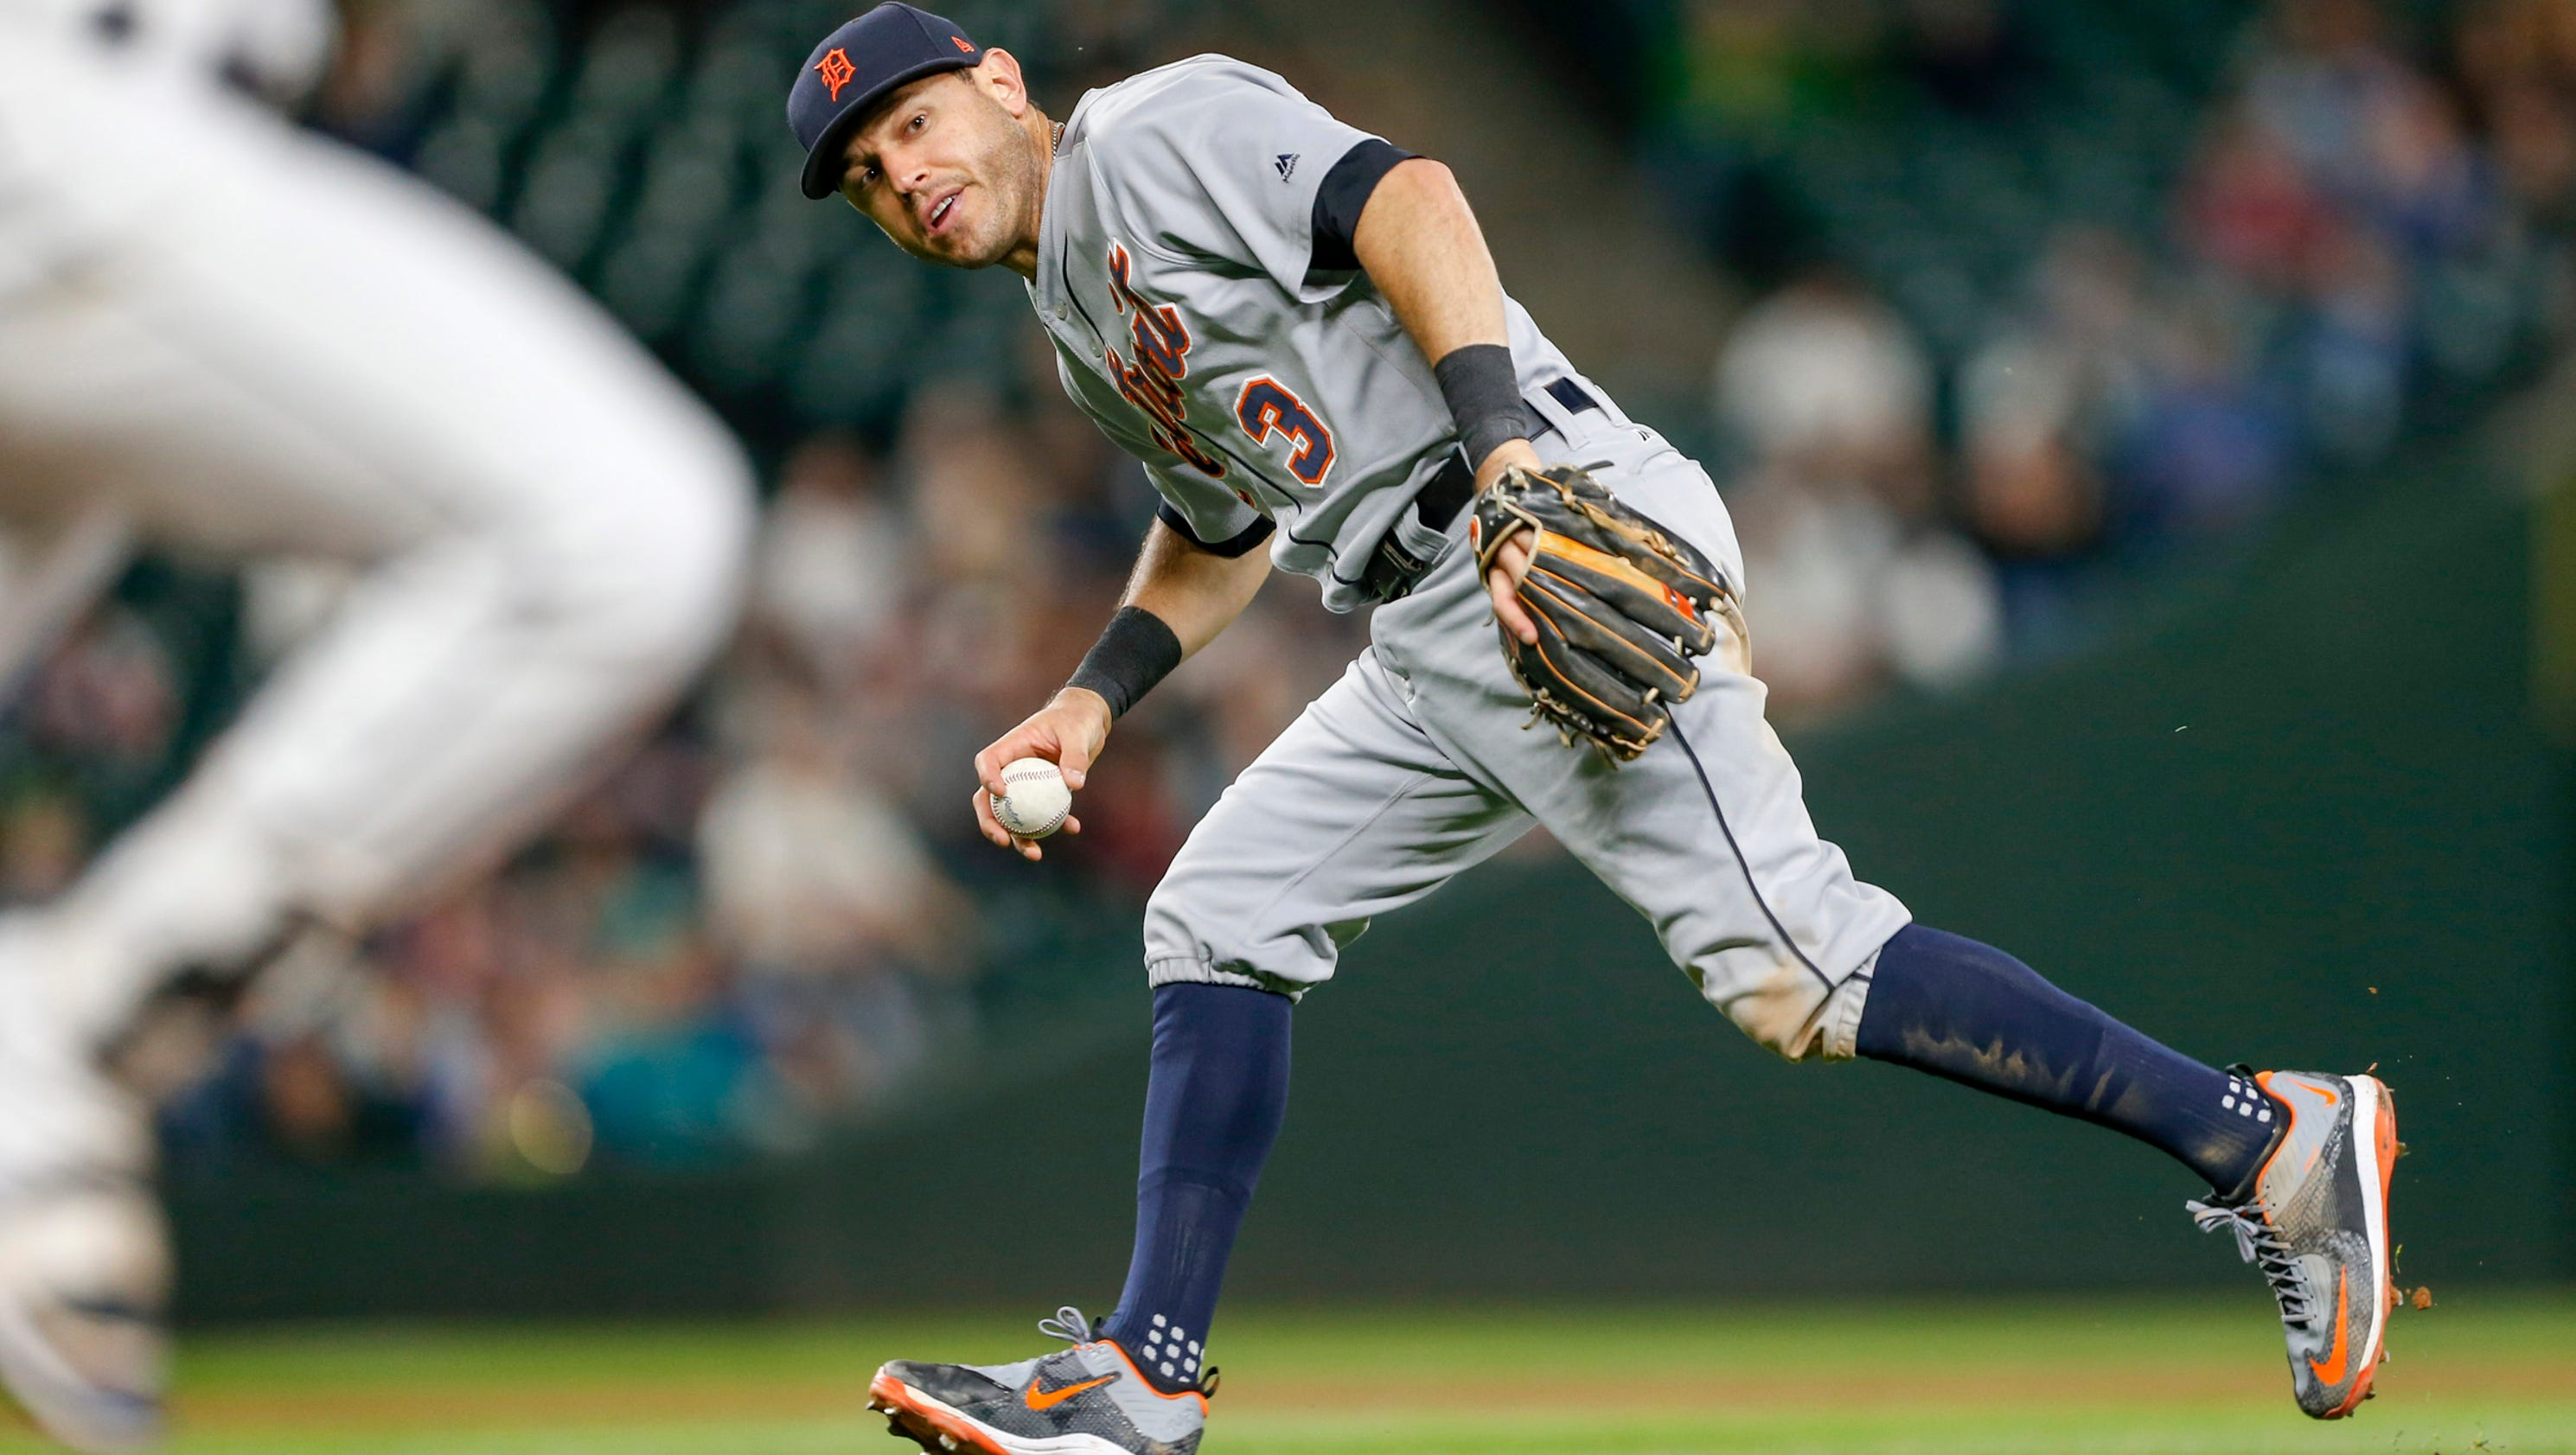 Frustration mounts as Detroit Tigers fall closer to last place